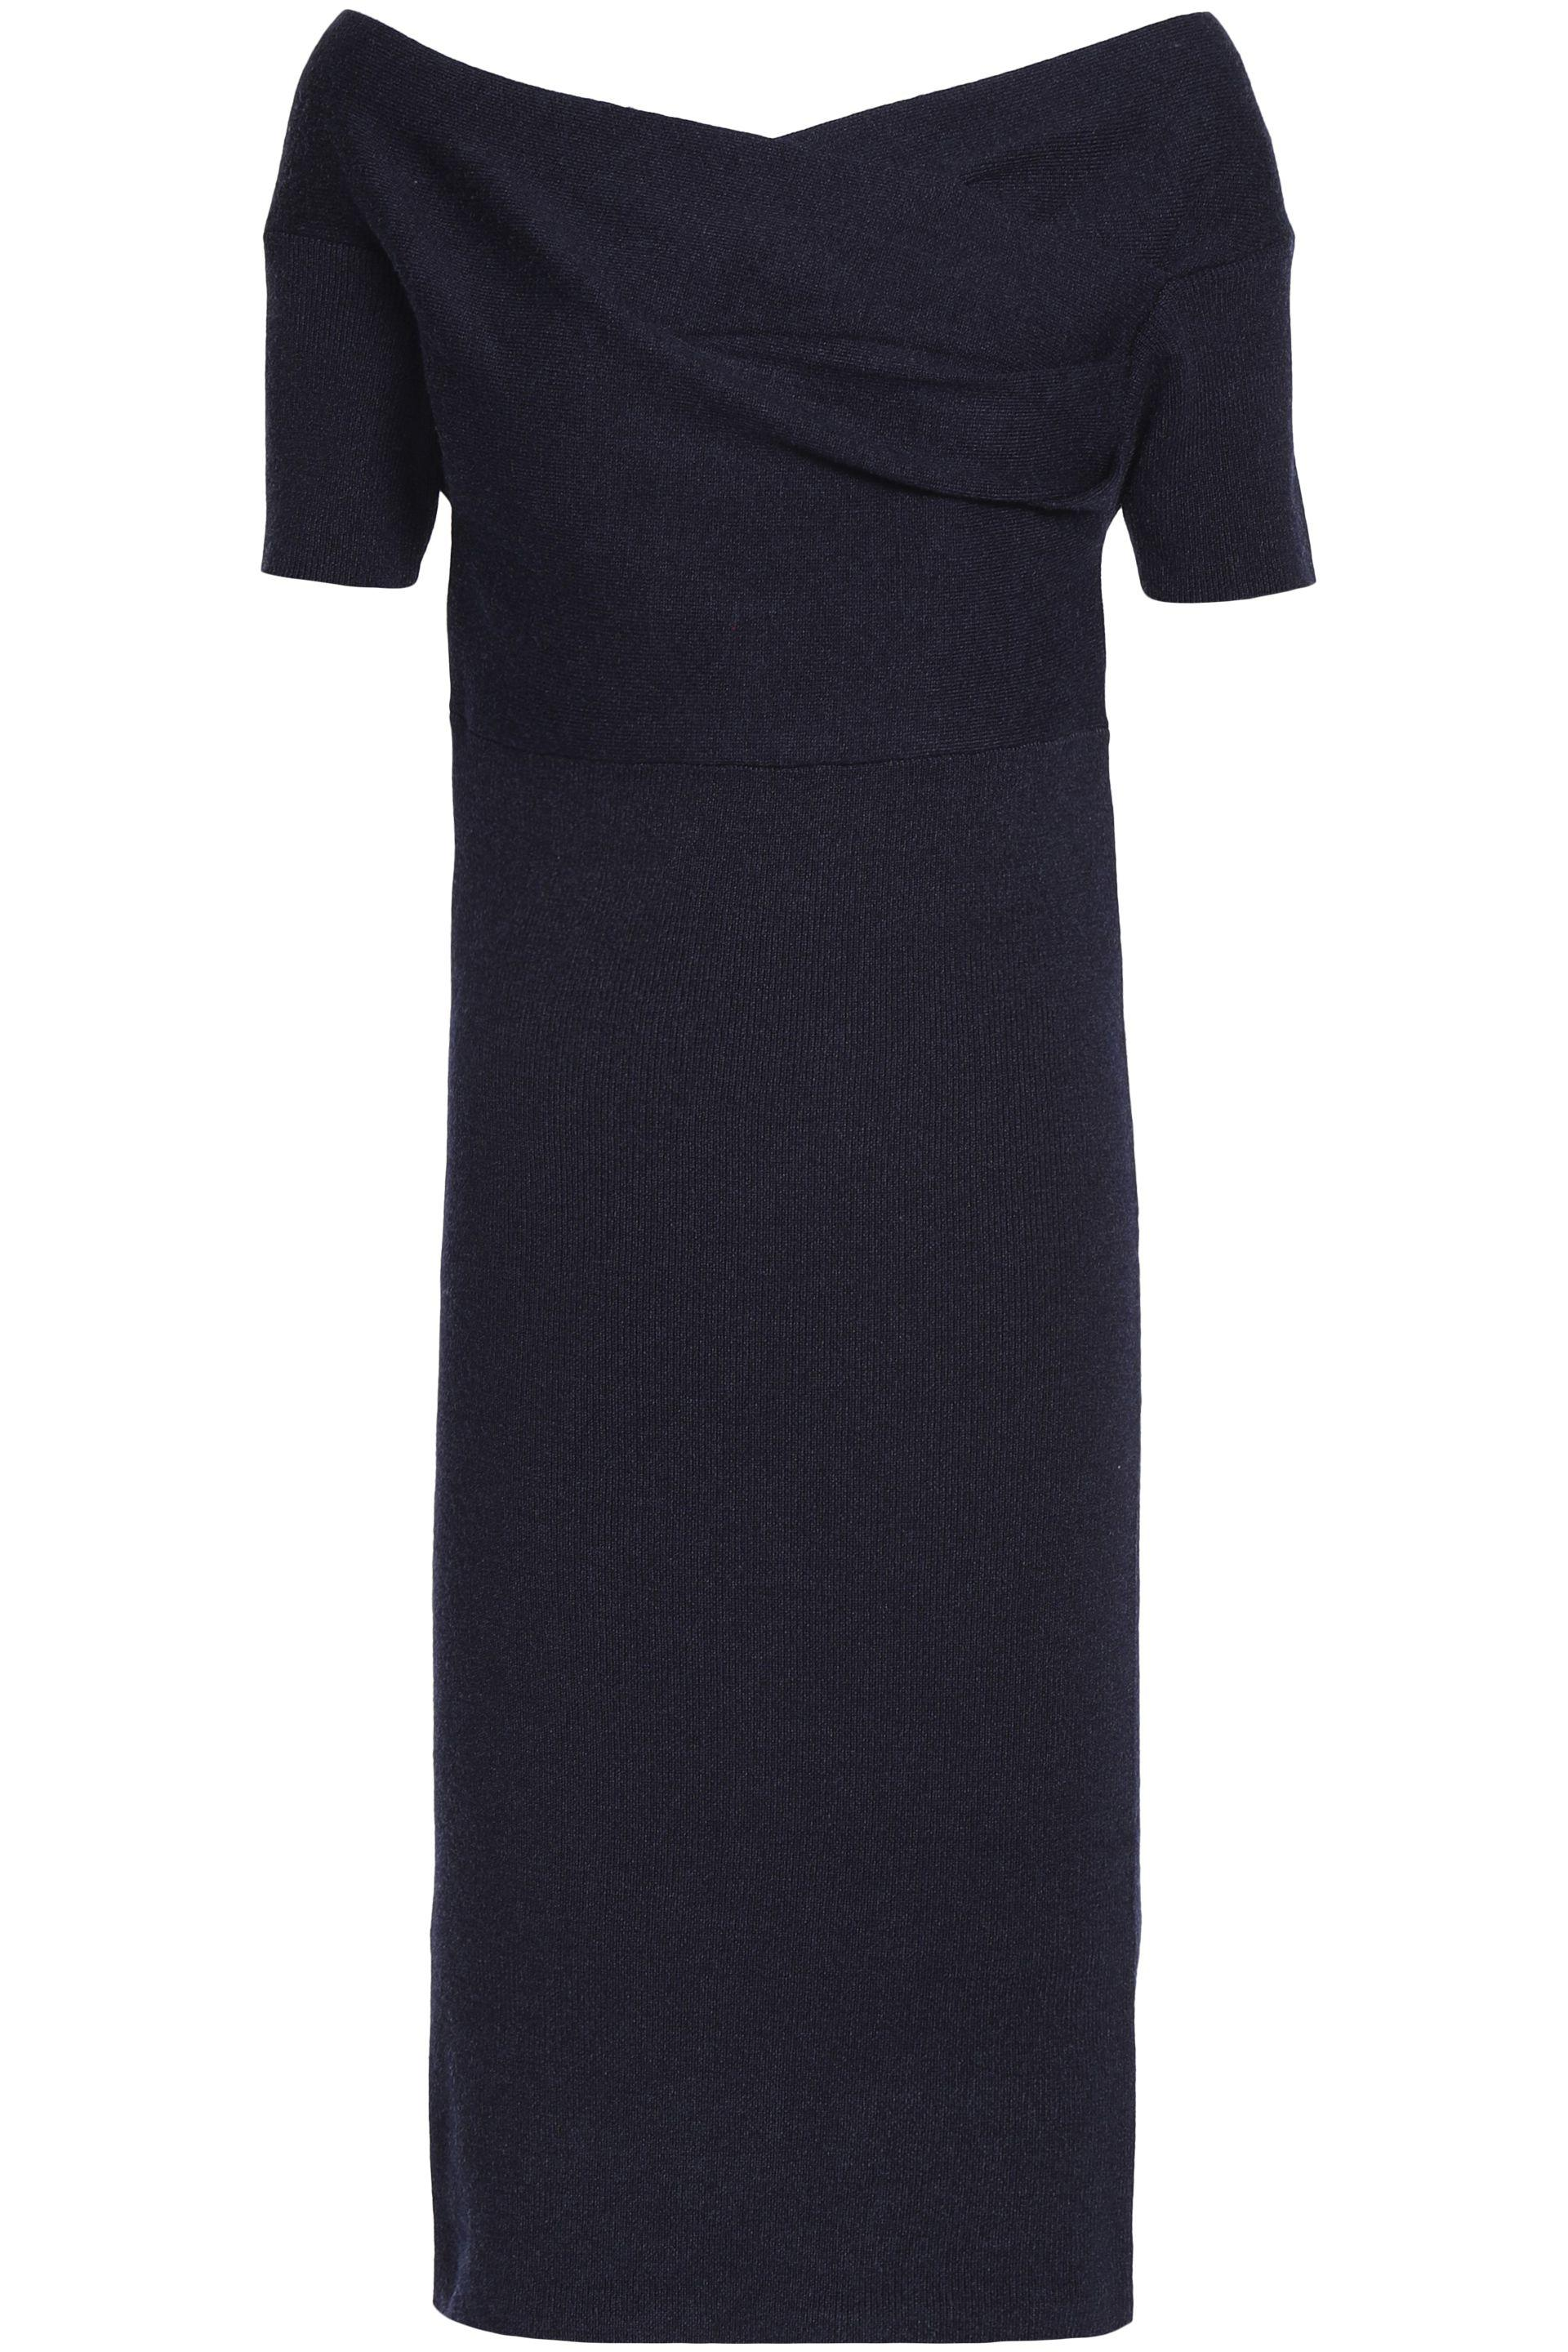 Sachin & Babi Woman Fluted Chantilly Lace-paneled Stretch-knit Dress Navy Size M Sachin & Babi PRwenB